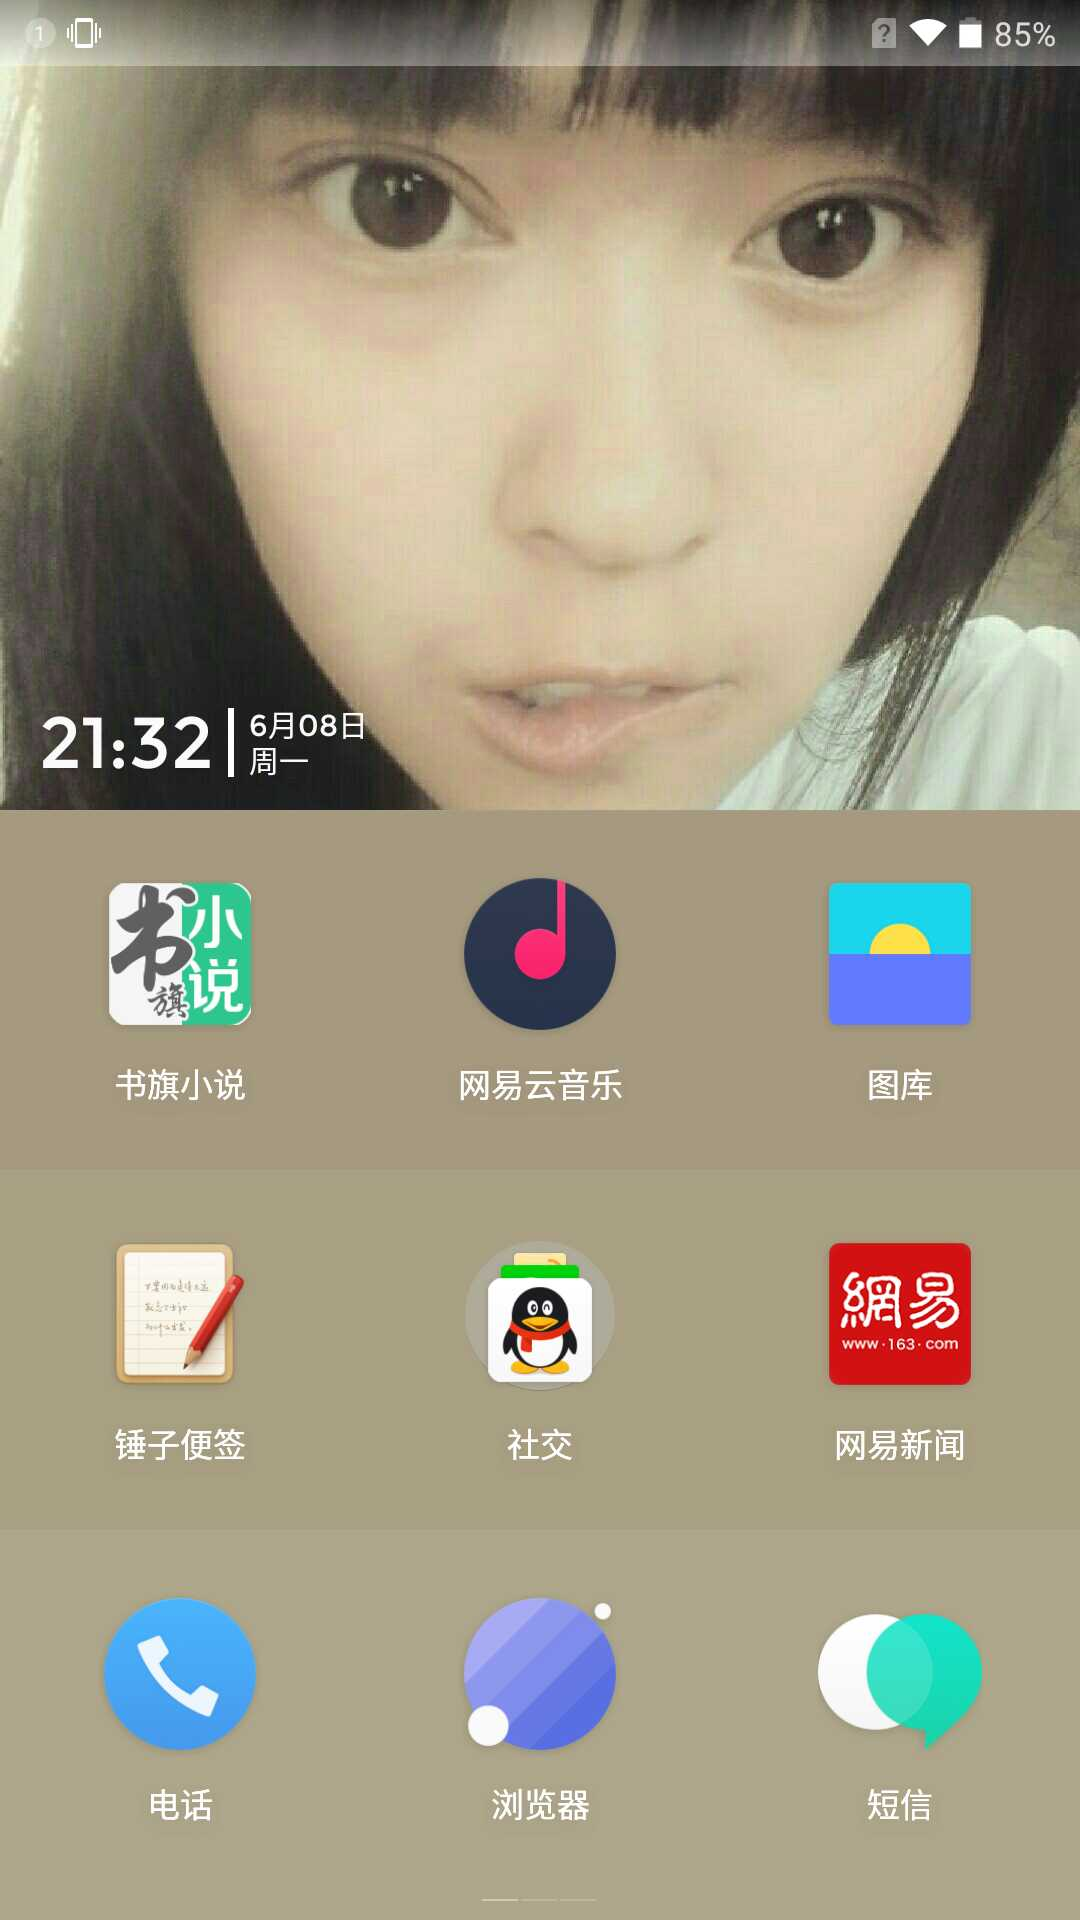 Screenshot_2015-06-08-21-32-22.png